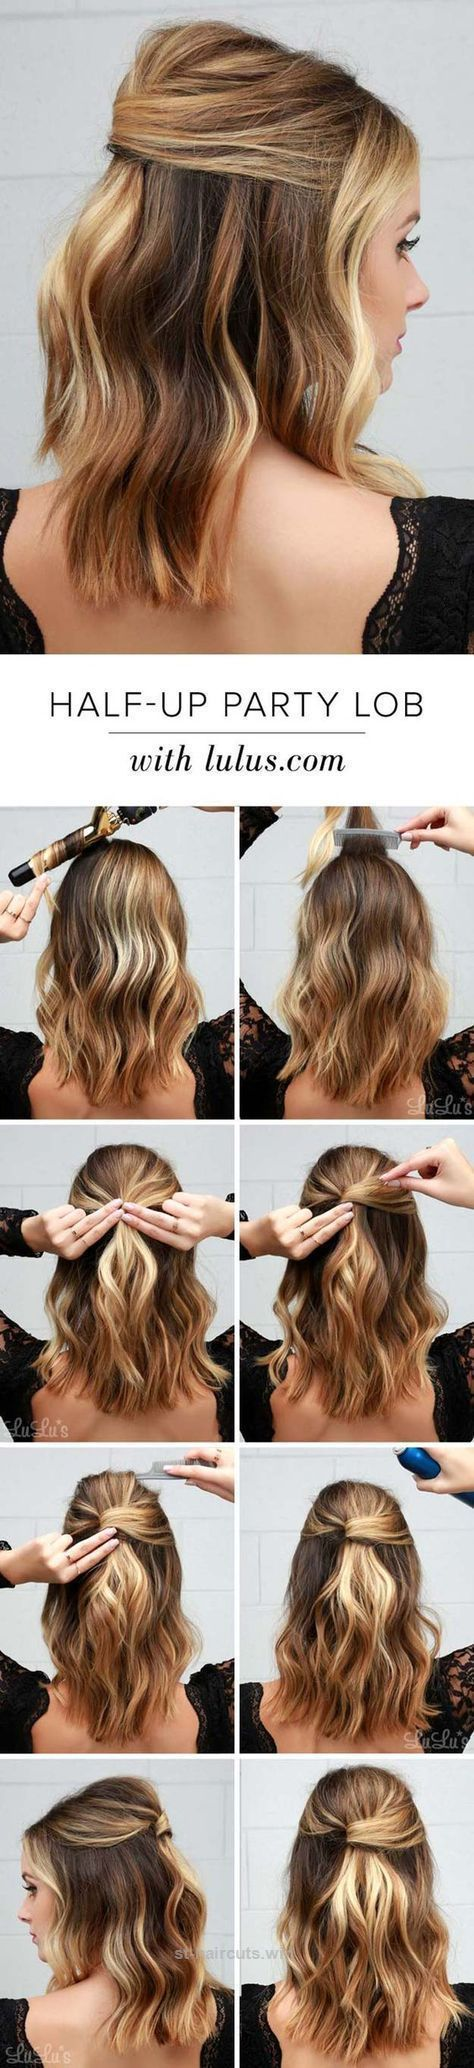 Awesome Cool and Easy DIY Hairstyles – Half Party Lob – Quick and Easy Ideas…